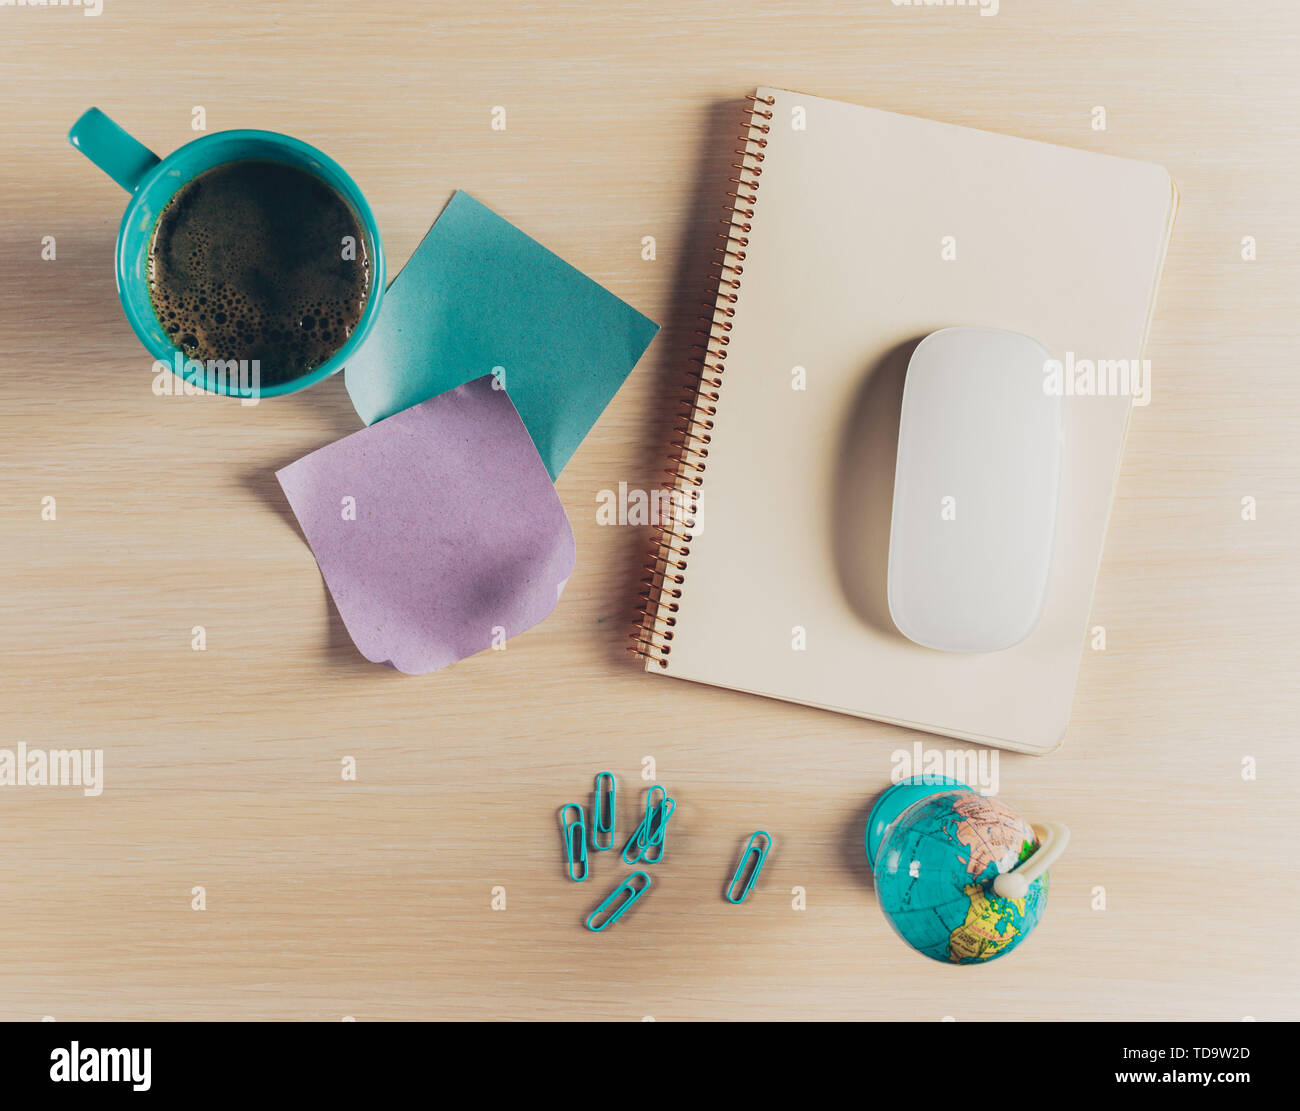 Top view workspace with blank notebook and pen on wooden table - Stock Image